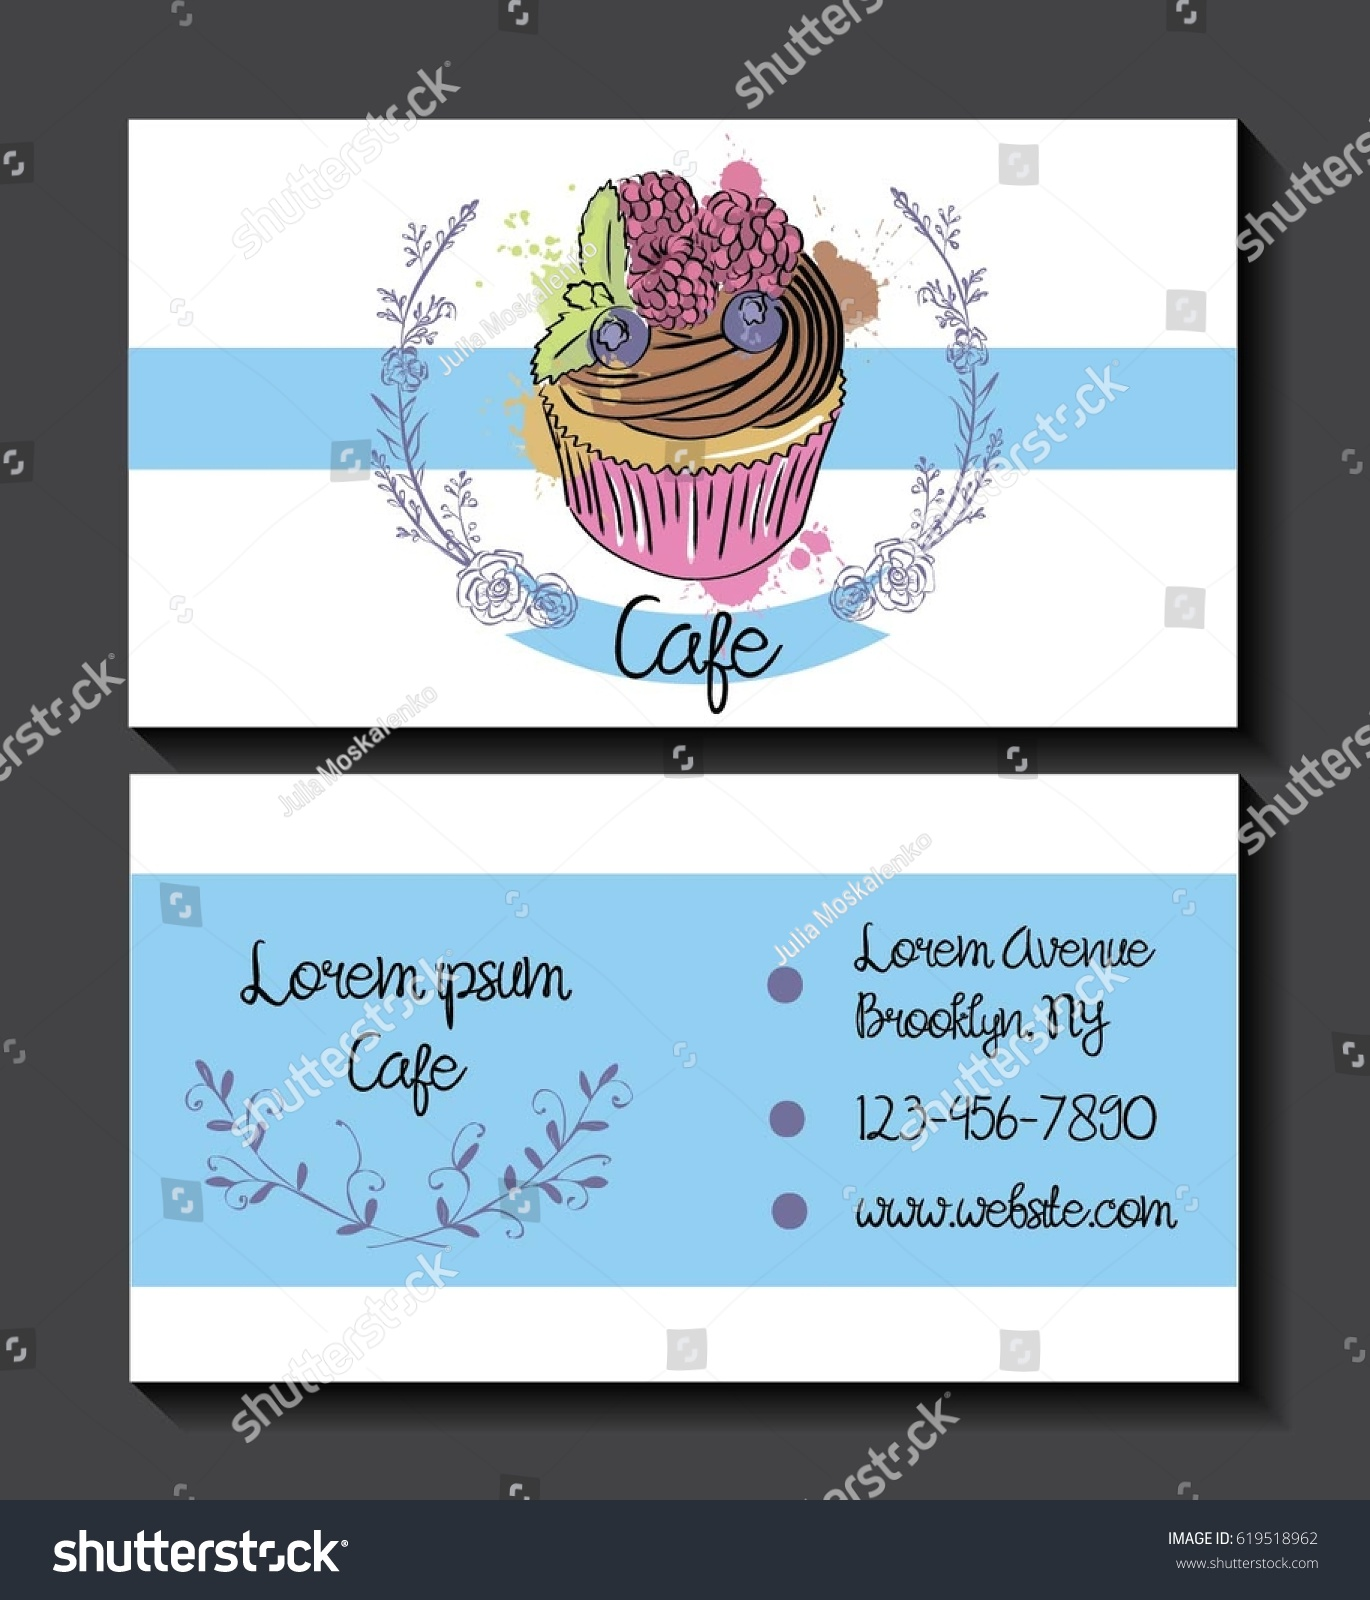 Business Card Template Hand Drawn Cupcake Stock Vector